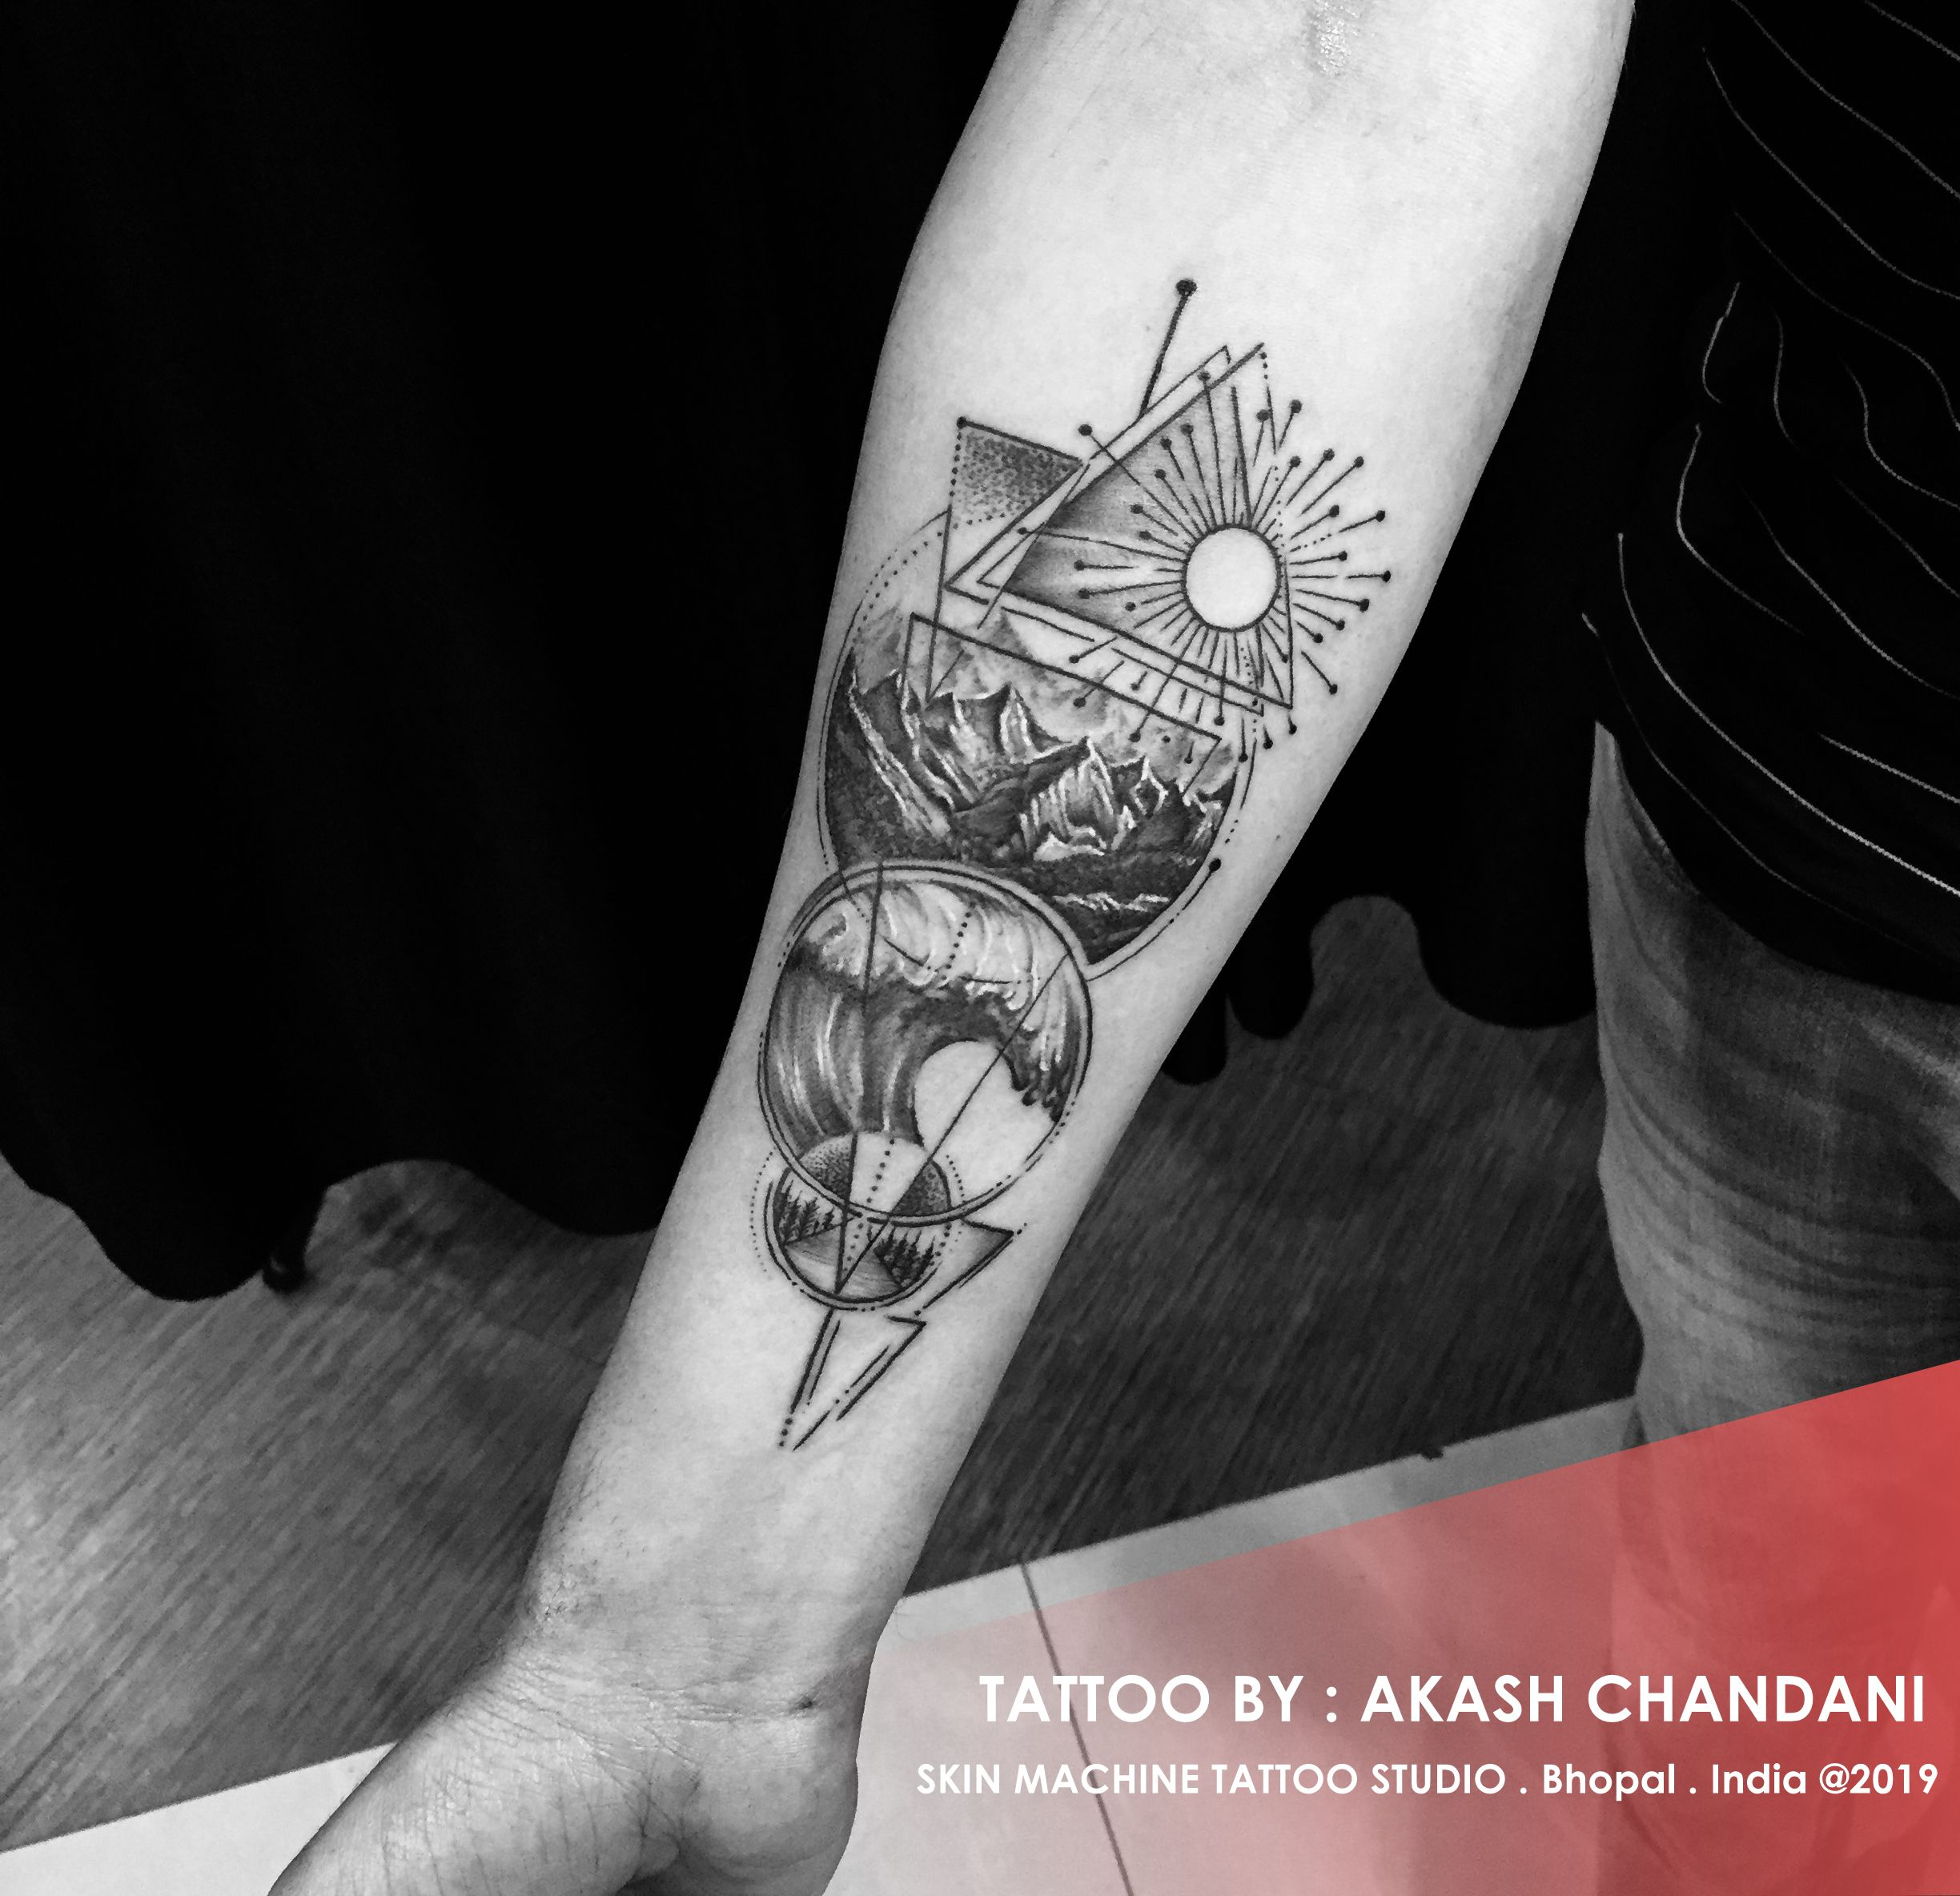 fad6a38df6395 5 Elements of nature, tattoo designed by : Akash Chandani Skin Machine  Tattoo Studio Email for appointments : skinmachineteam@gmail.com ...